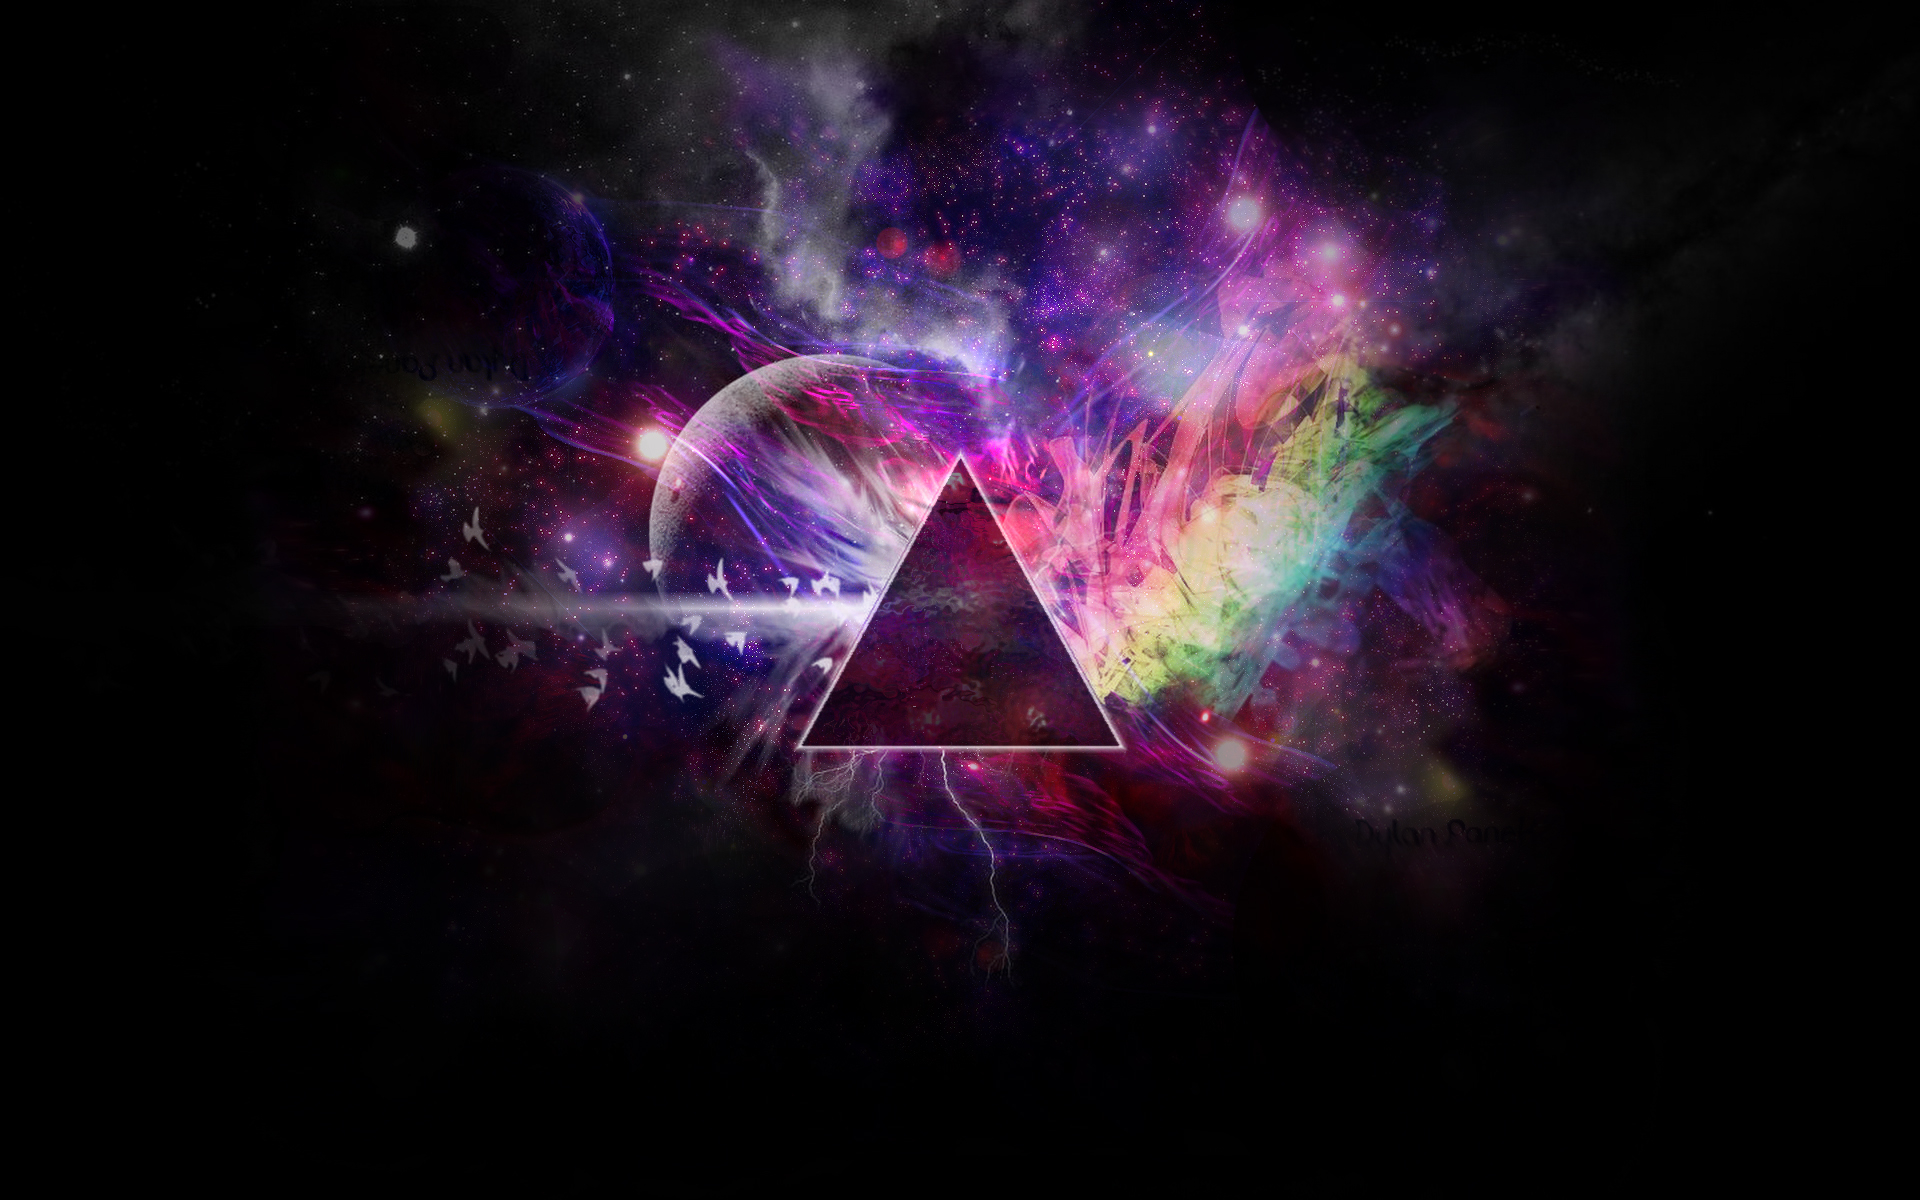 Darkside Of The Moon Space Art By Boobooi On DeviantArt